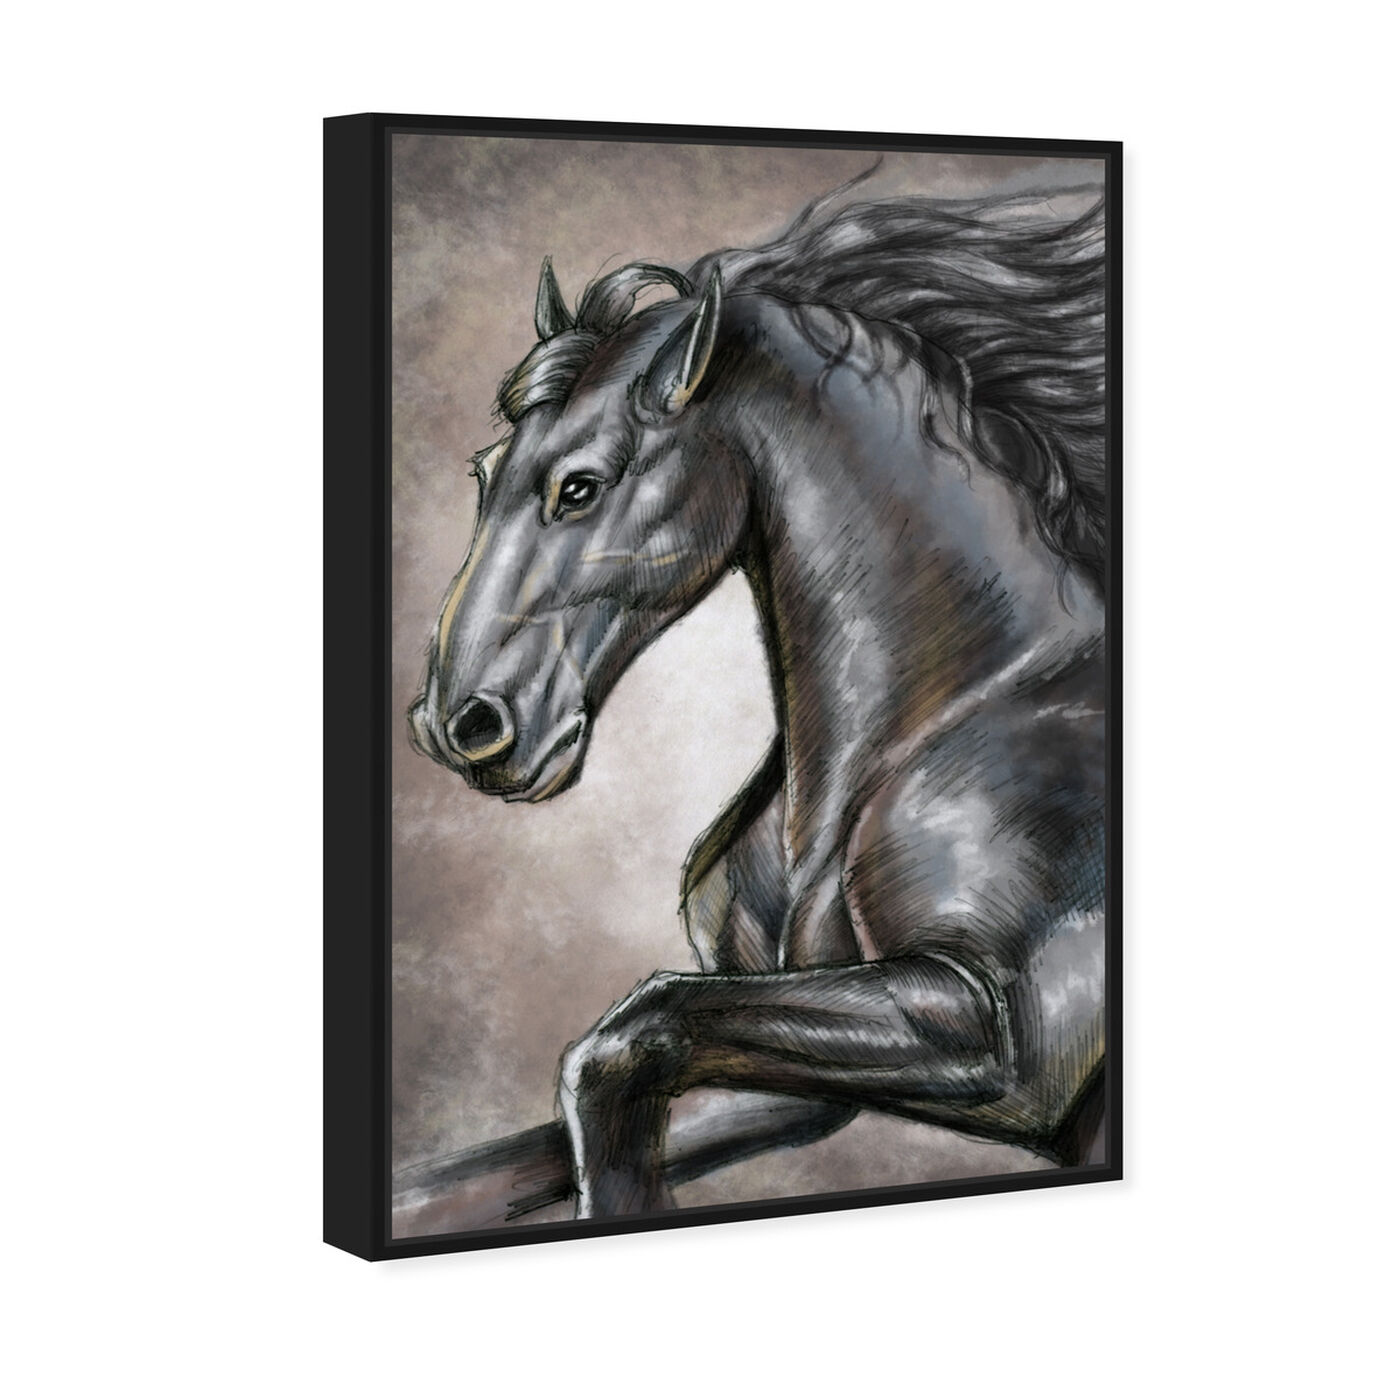 Angled view of Gray Horse featuring animals and farm animals art.